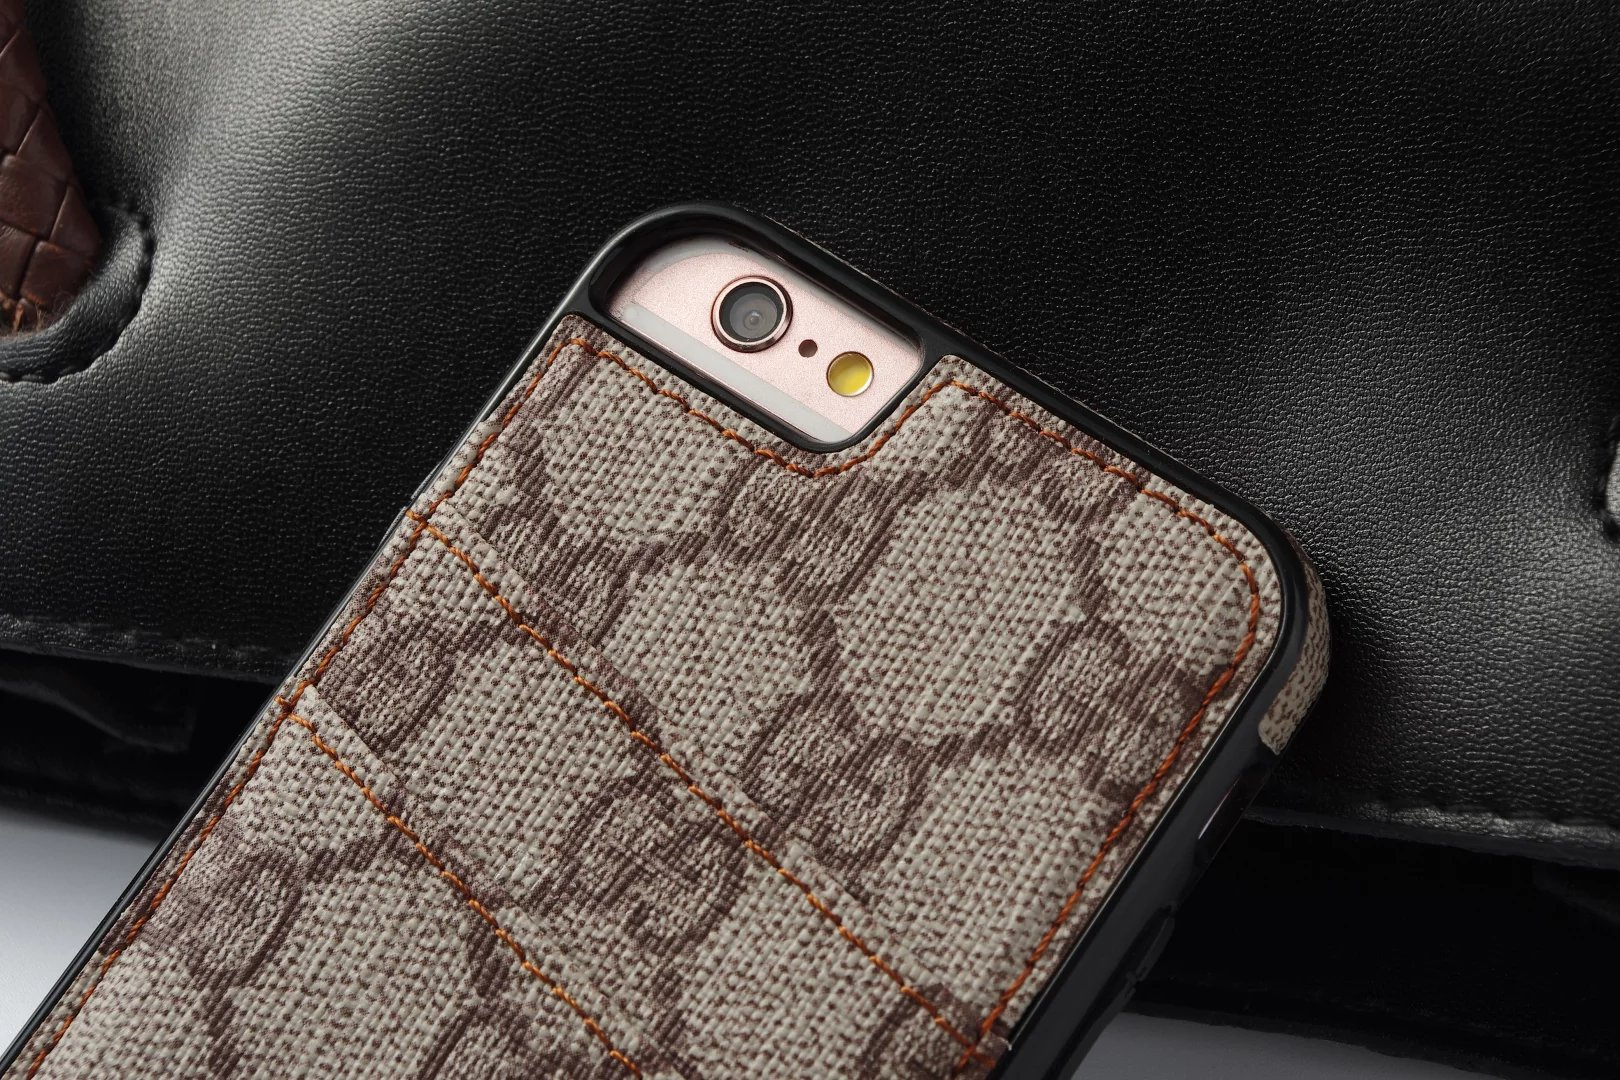 hülle iphone hülle für iphone Louis Vuitton iphone7 Plus hülle handy hülle htc one verkaufe iphone 6 tasche iphone 7 Plus leder iphone 7 Plus hülle aufklappbar iphone ca7 designer fotodruck handyhülle